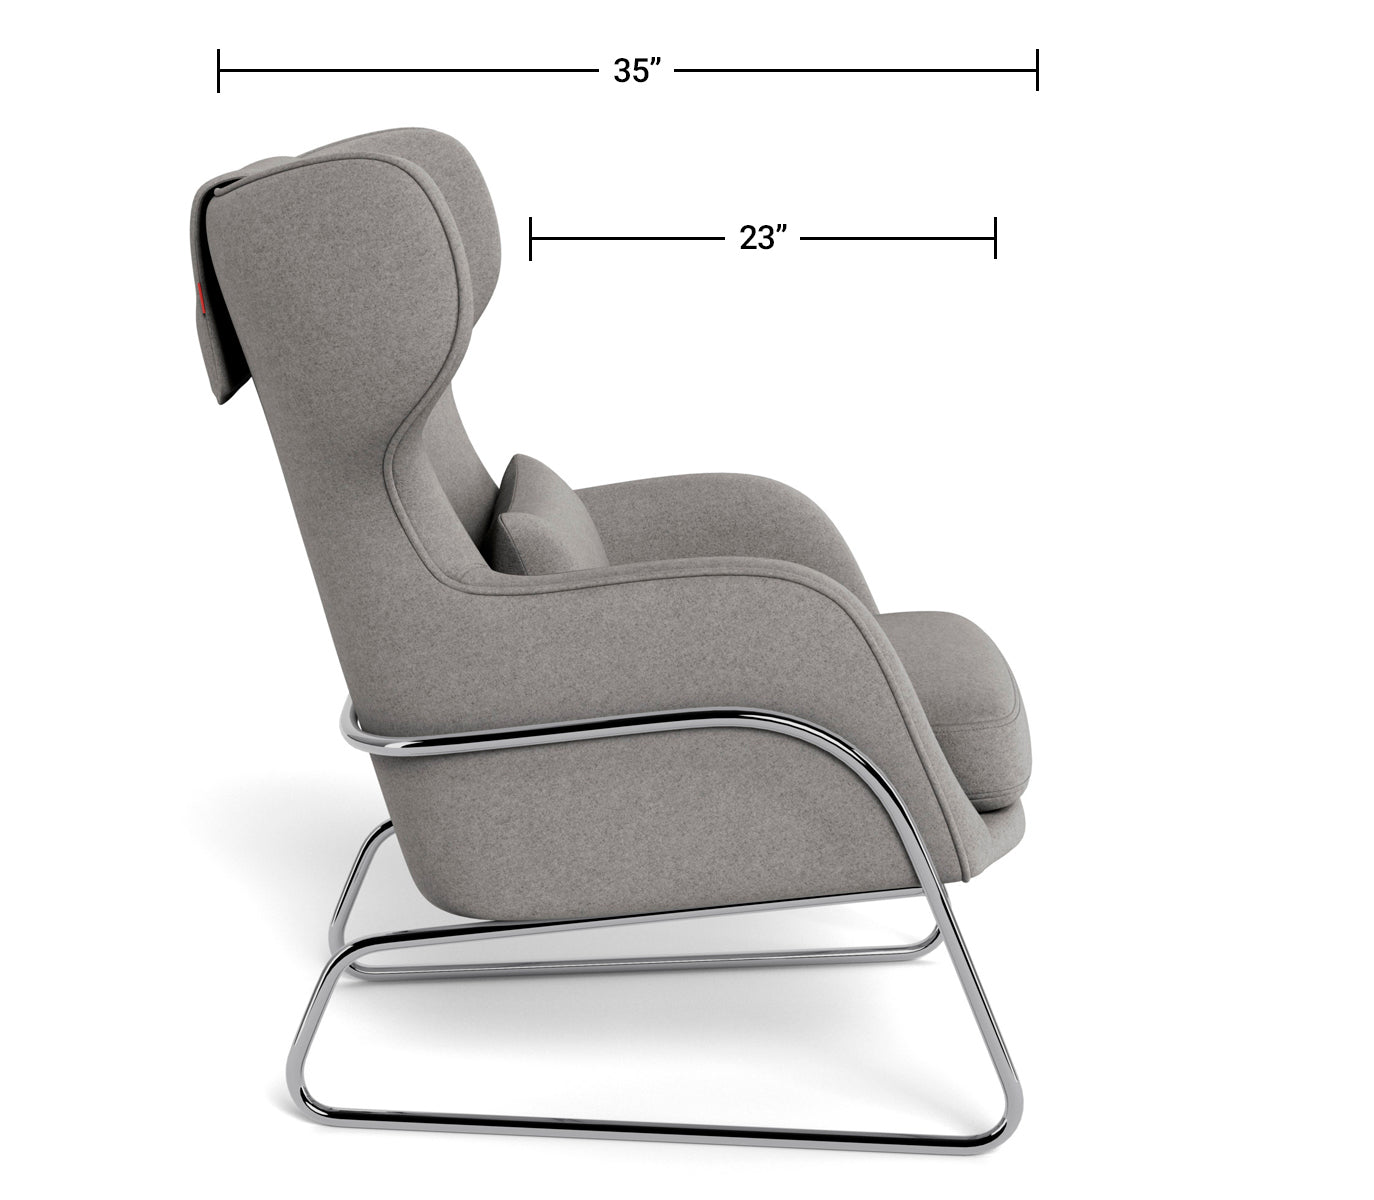 Modern Lounge Chair - Grand Jackson Lounge Dimensions Side View